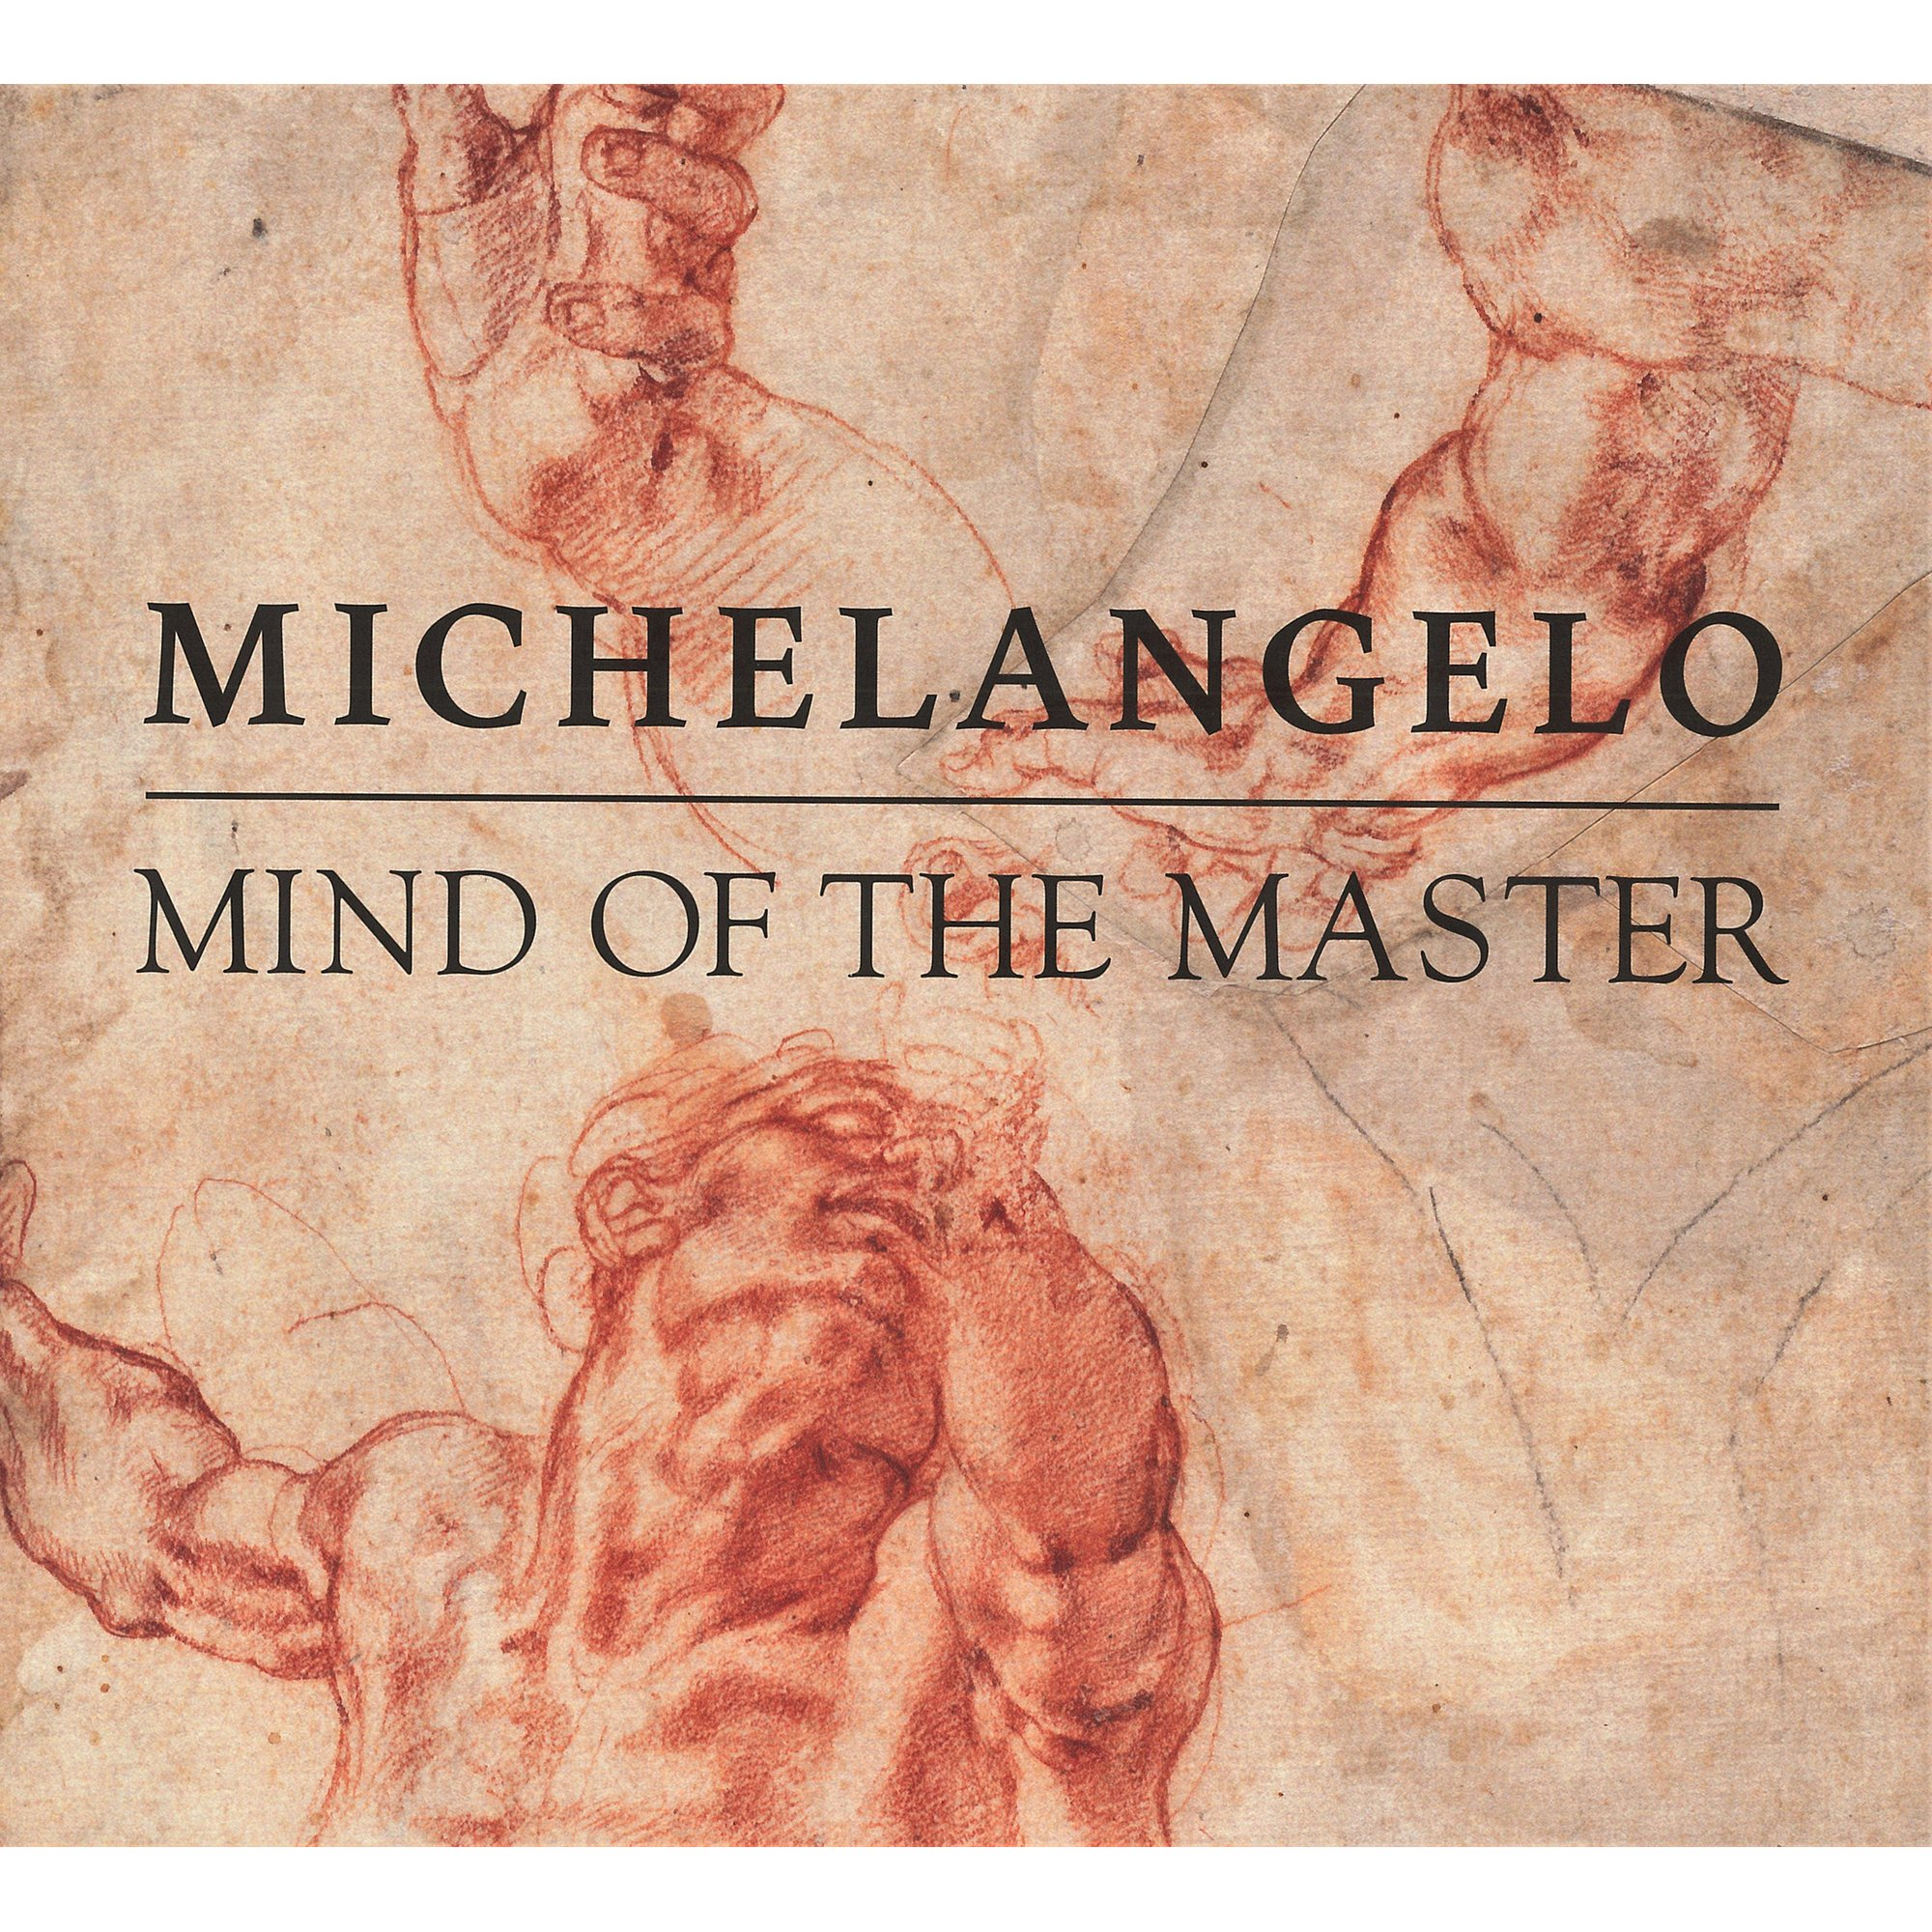 Michelangelo: Mind of the Master book cover